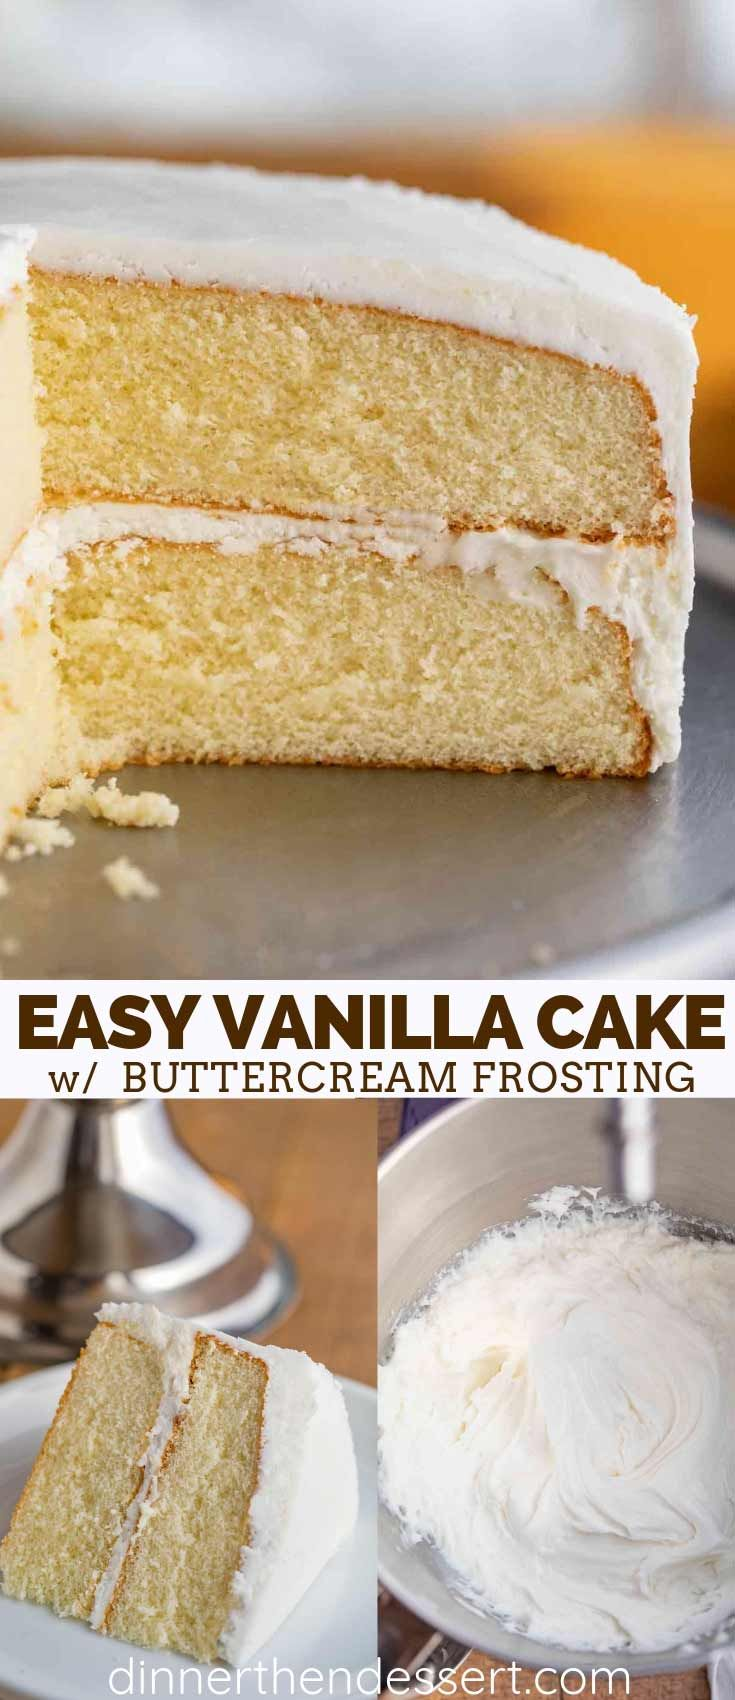 Vanilla Cake is a CLASSIC cake recipe made with vanilla extract and topped with buttercream frosting, ready in under 60 minutes!